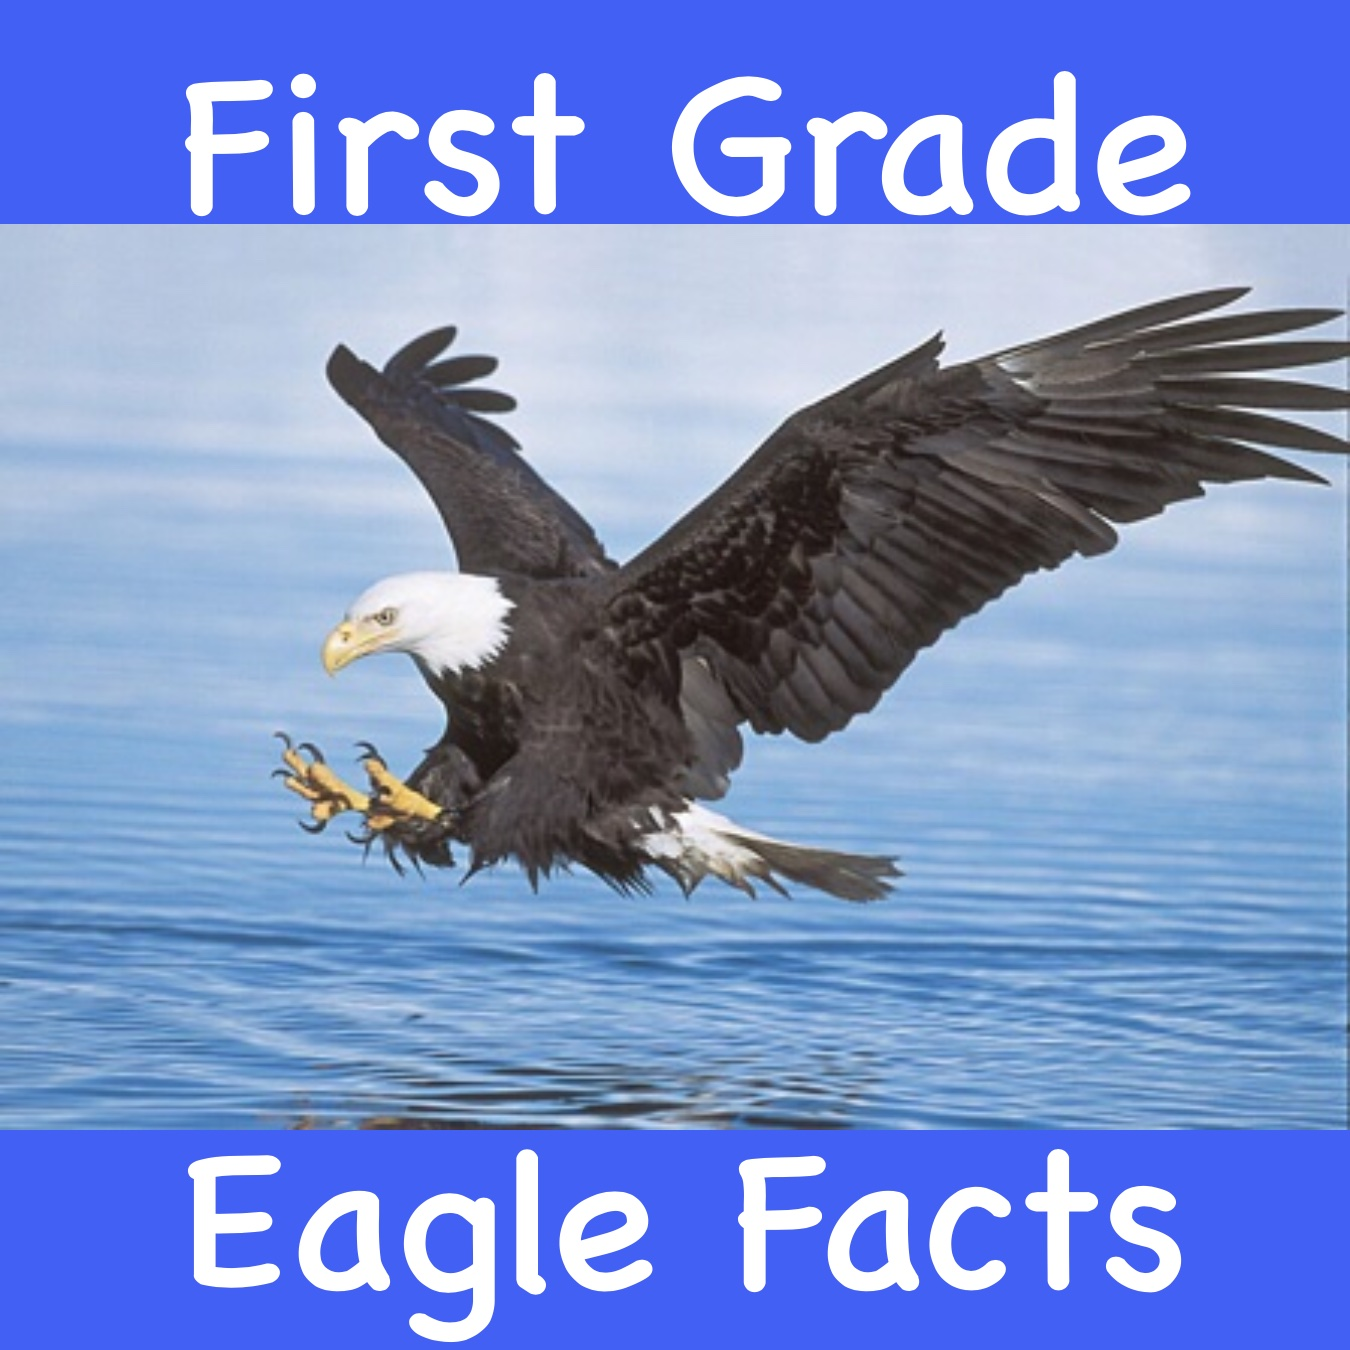 First Grade Eagle Facts